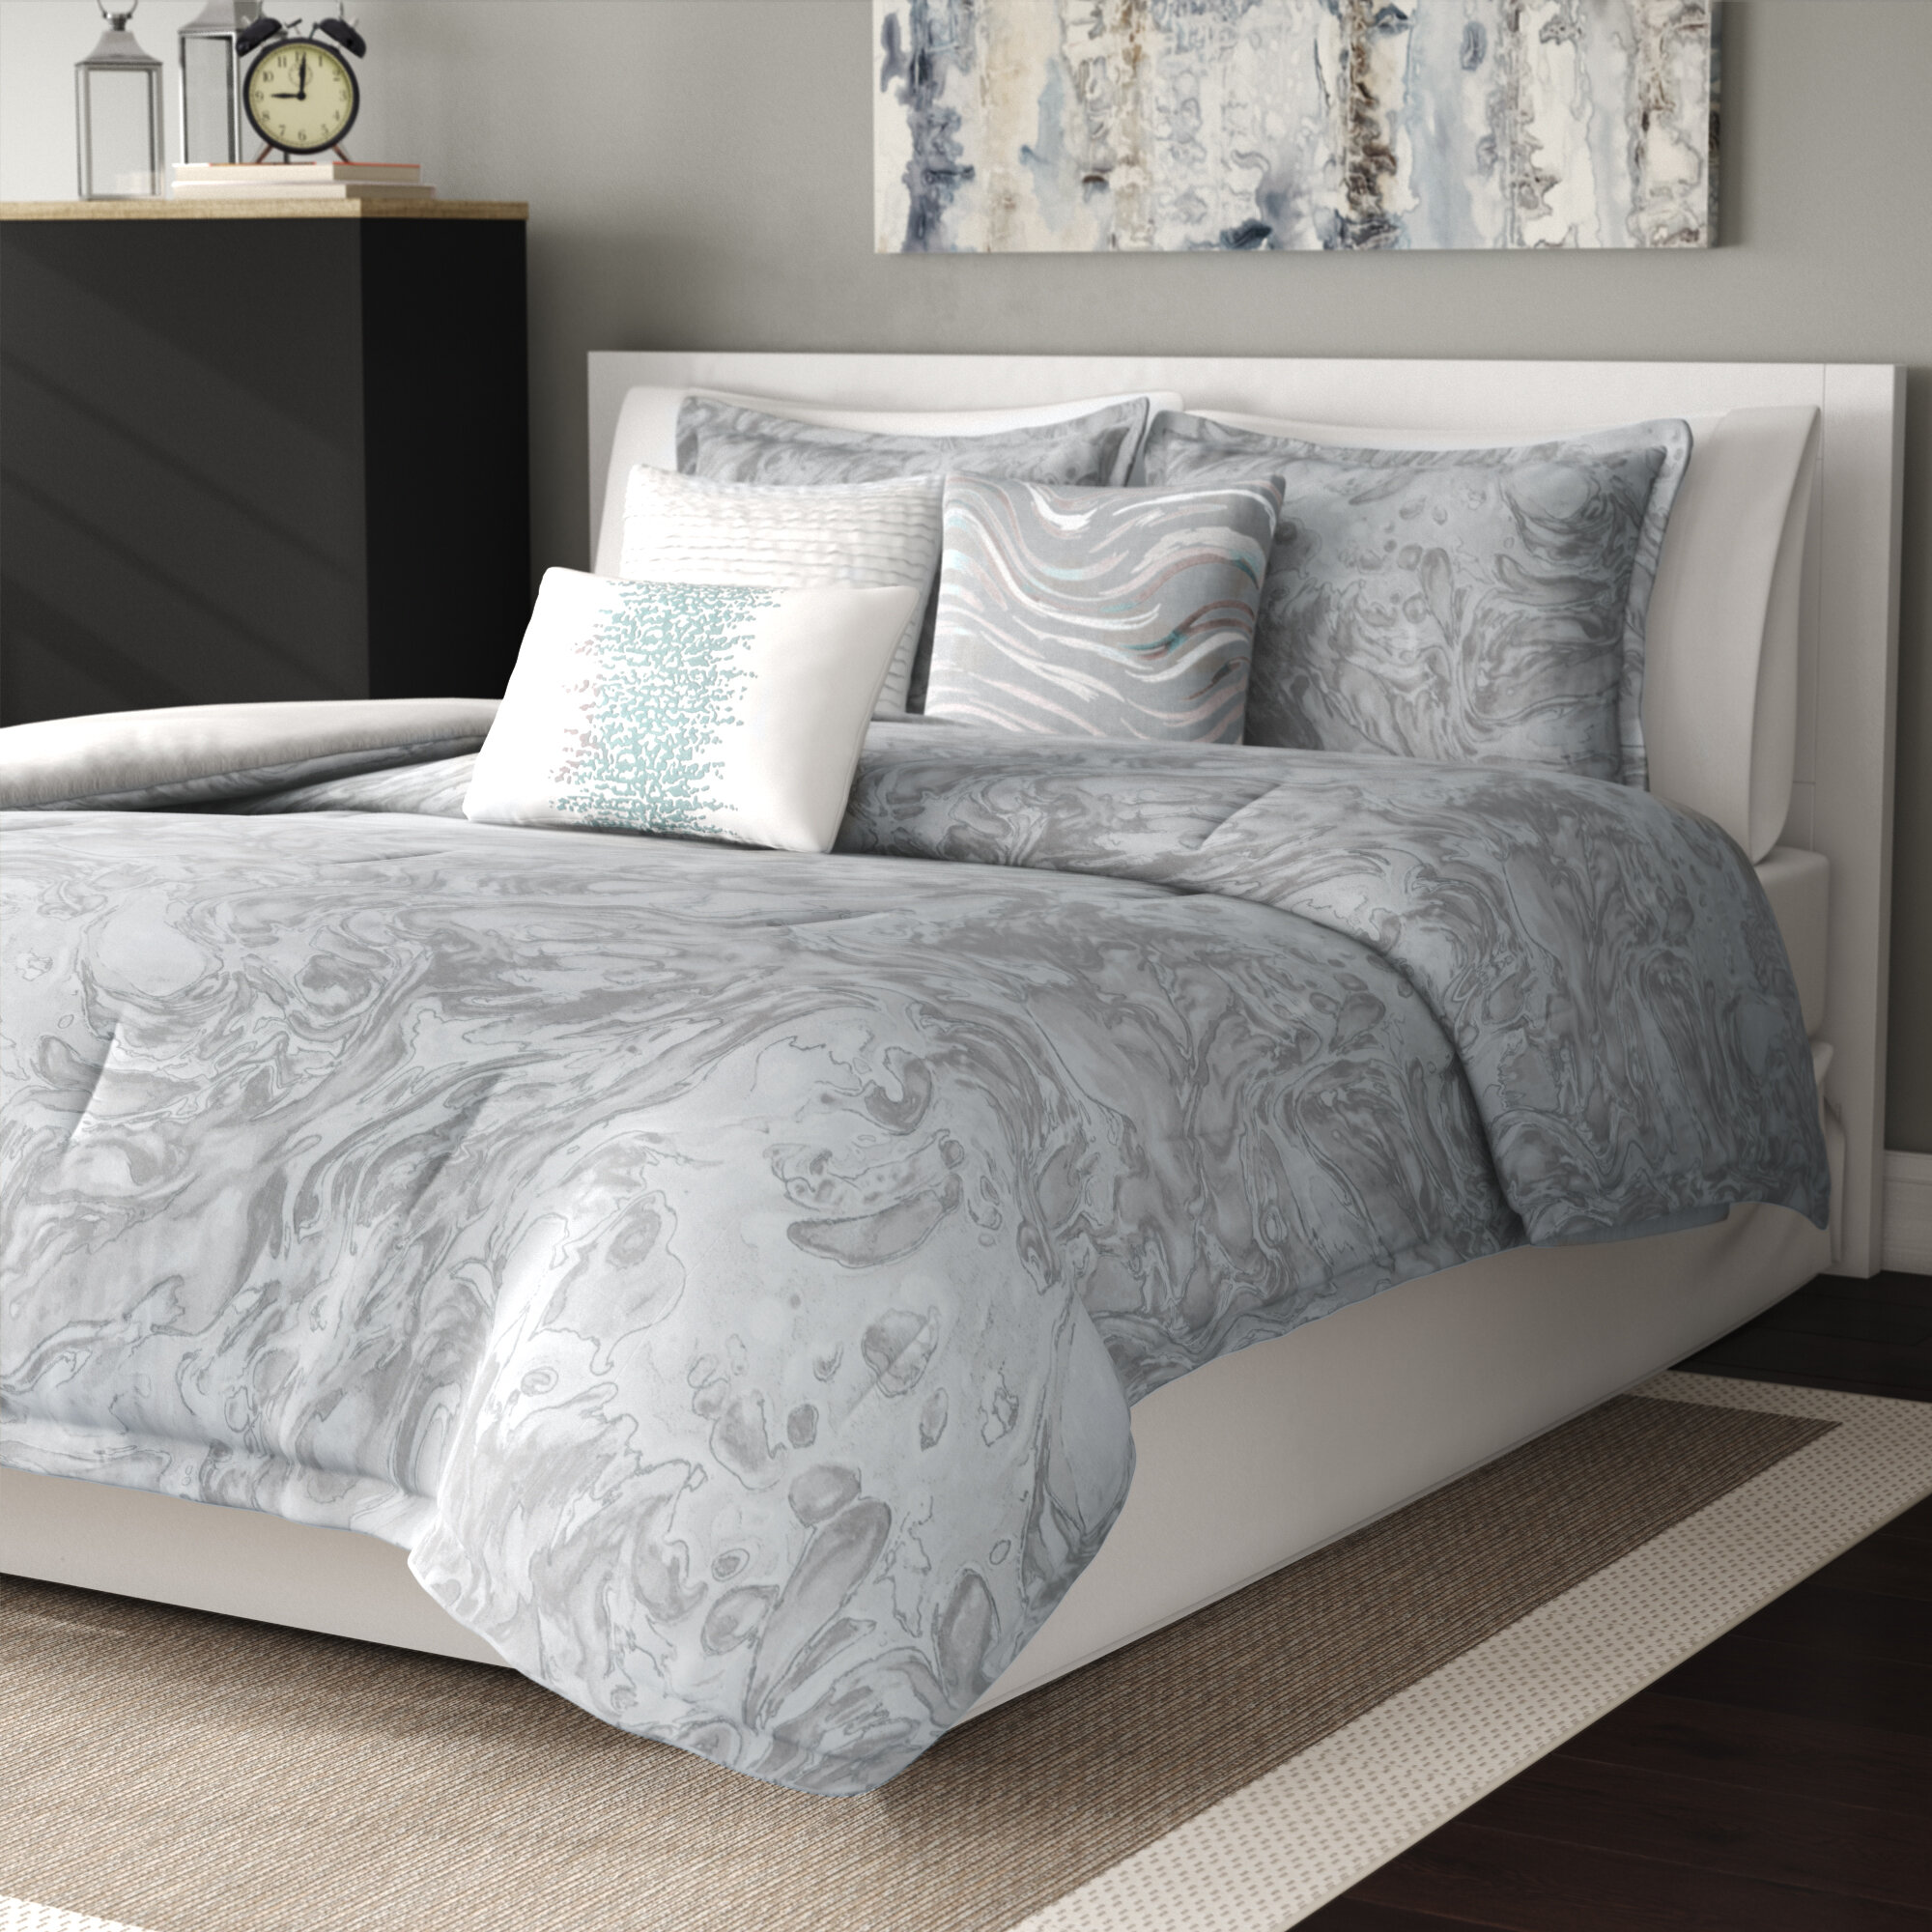 Bed Linens Sets Vintage Sienna Grey And White King Duvet Cover Pillow Set Shabby Chic Style Home Furniture Diy 5050 Pk